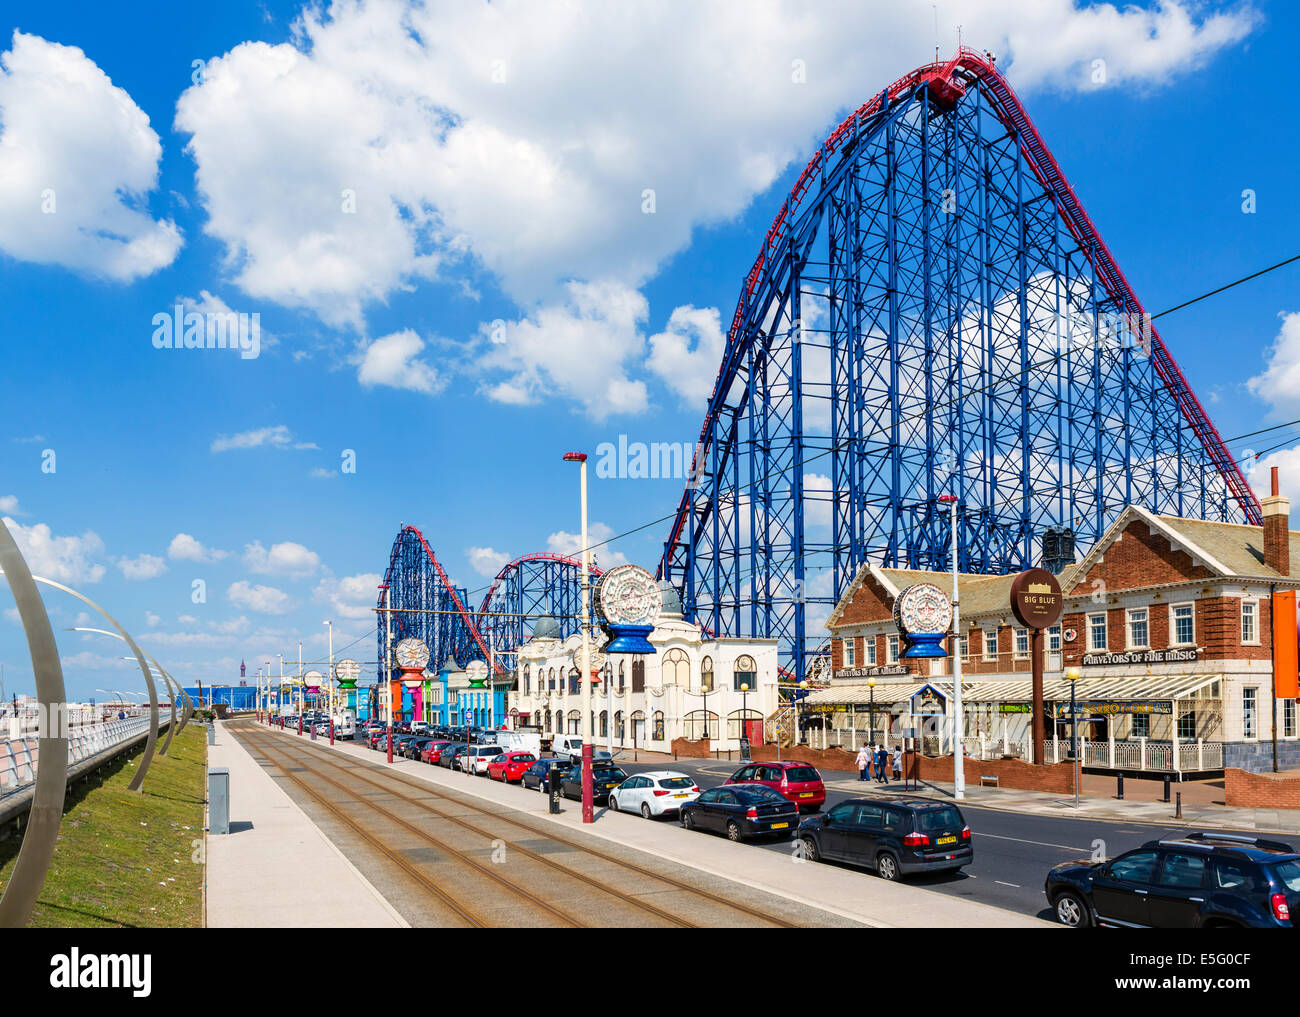 The Big One roller-coaster at the Pleasure Beach amusement park, Blackpool, Lancashire, UK - Stock Image